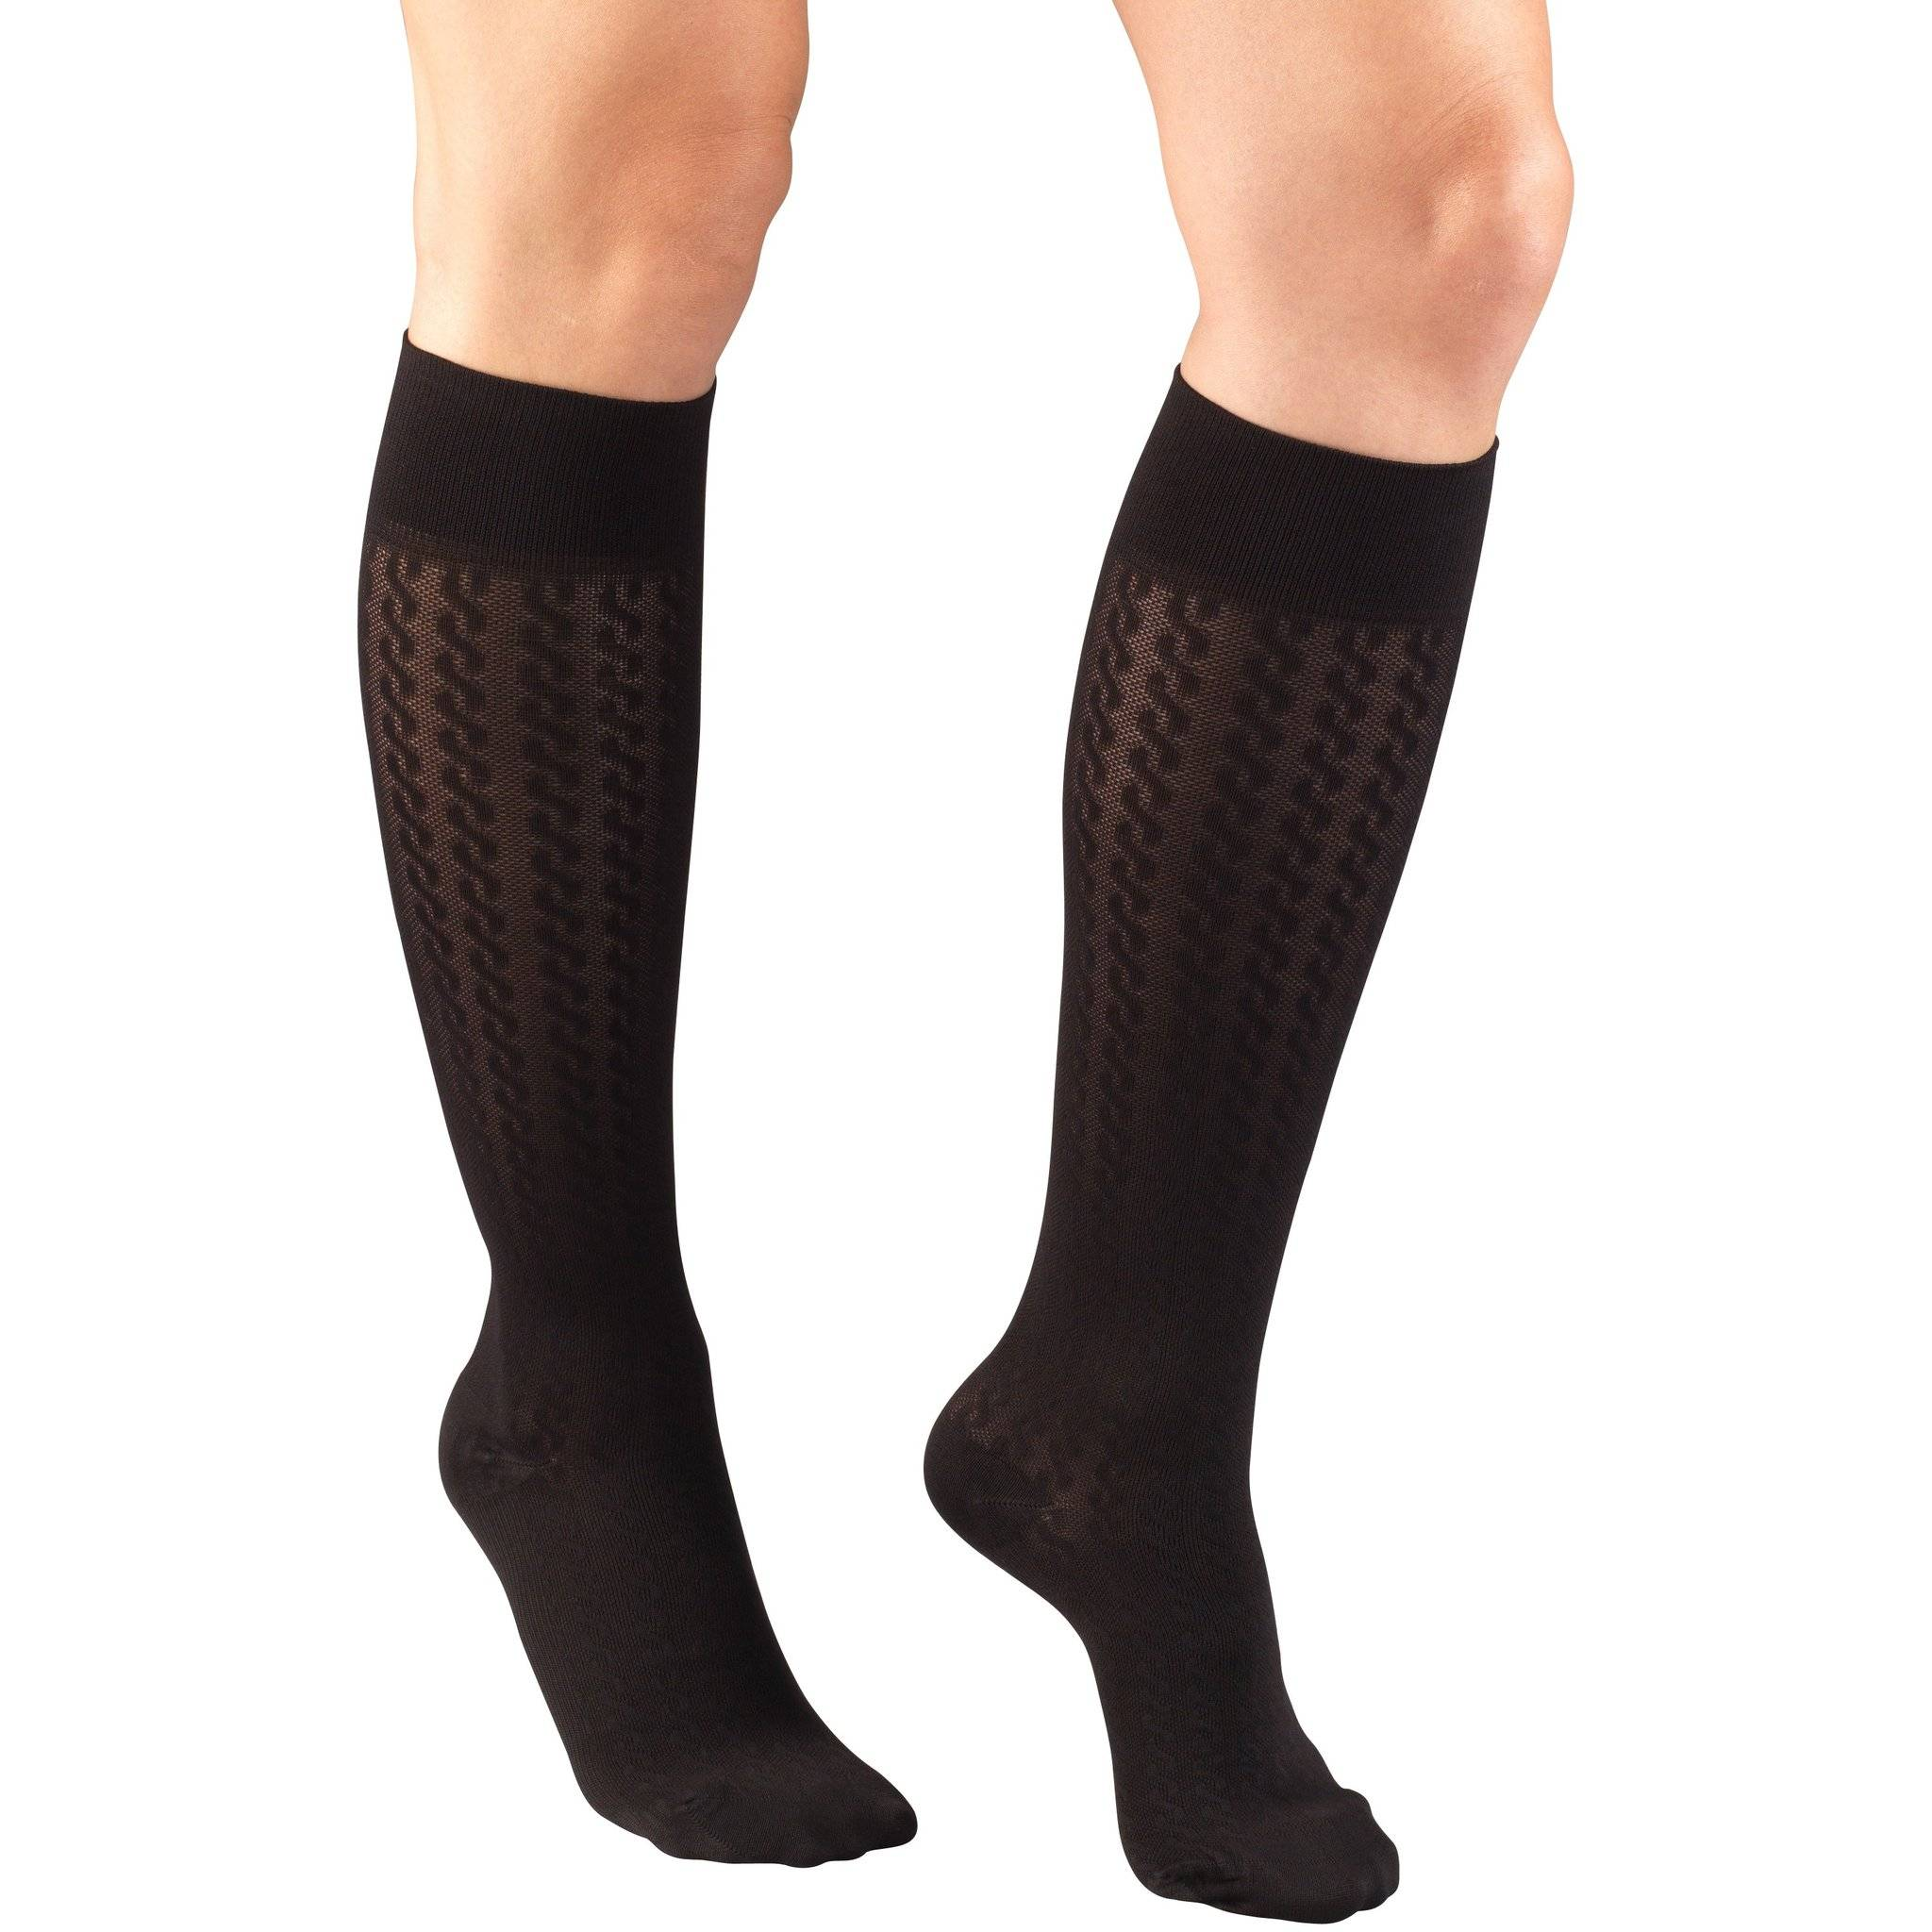 Ladies' Knee High Cable Pattern Socks